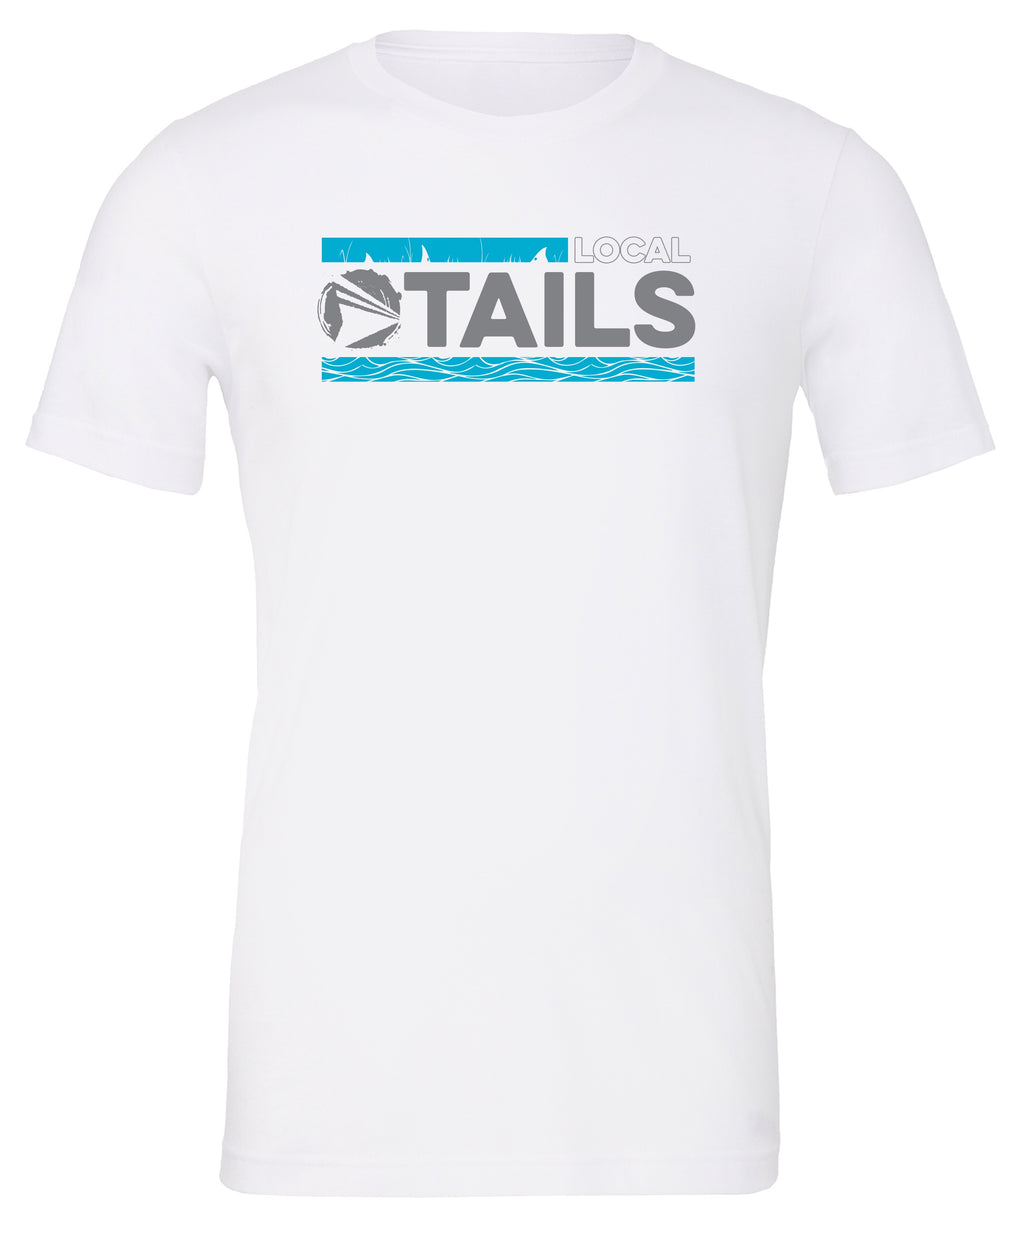 Waves & Tails T-Shirt